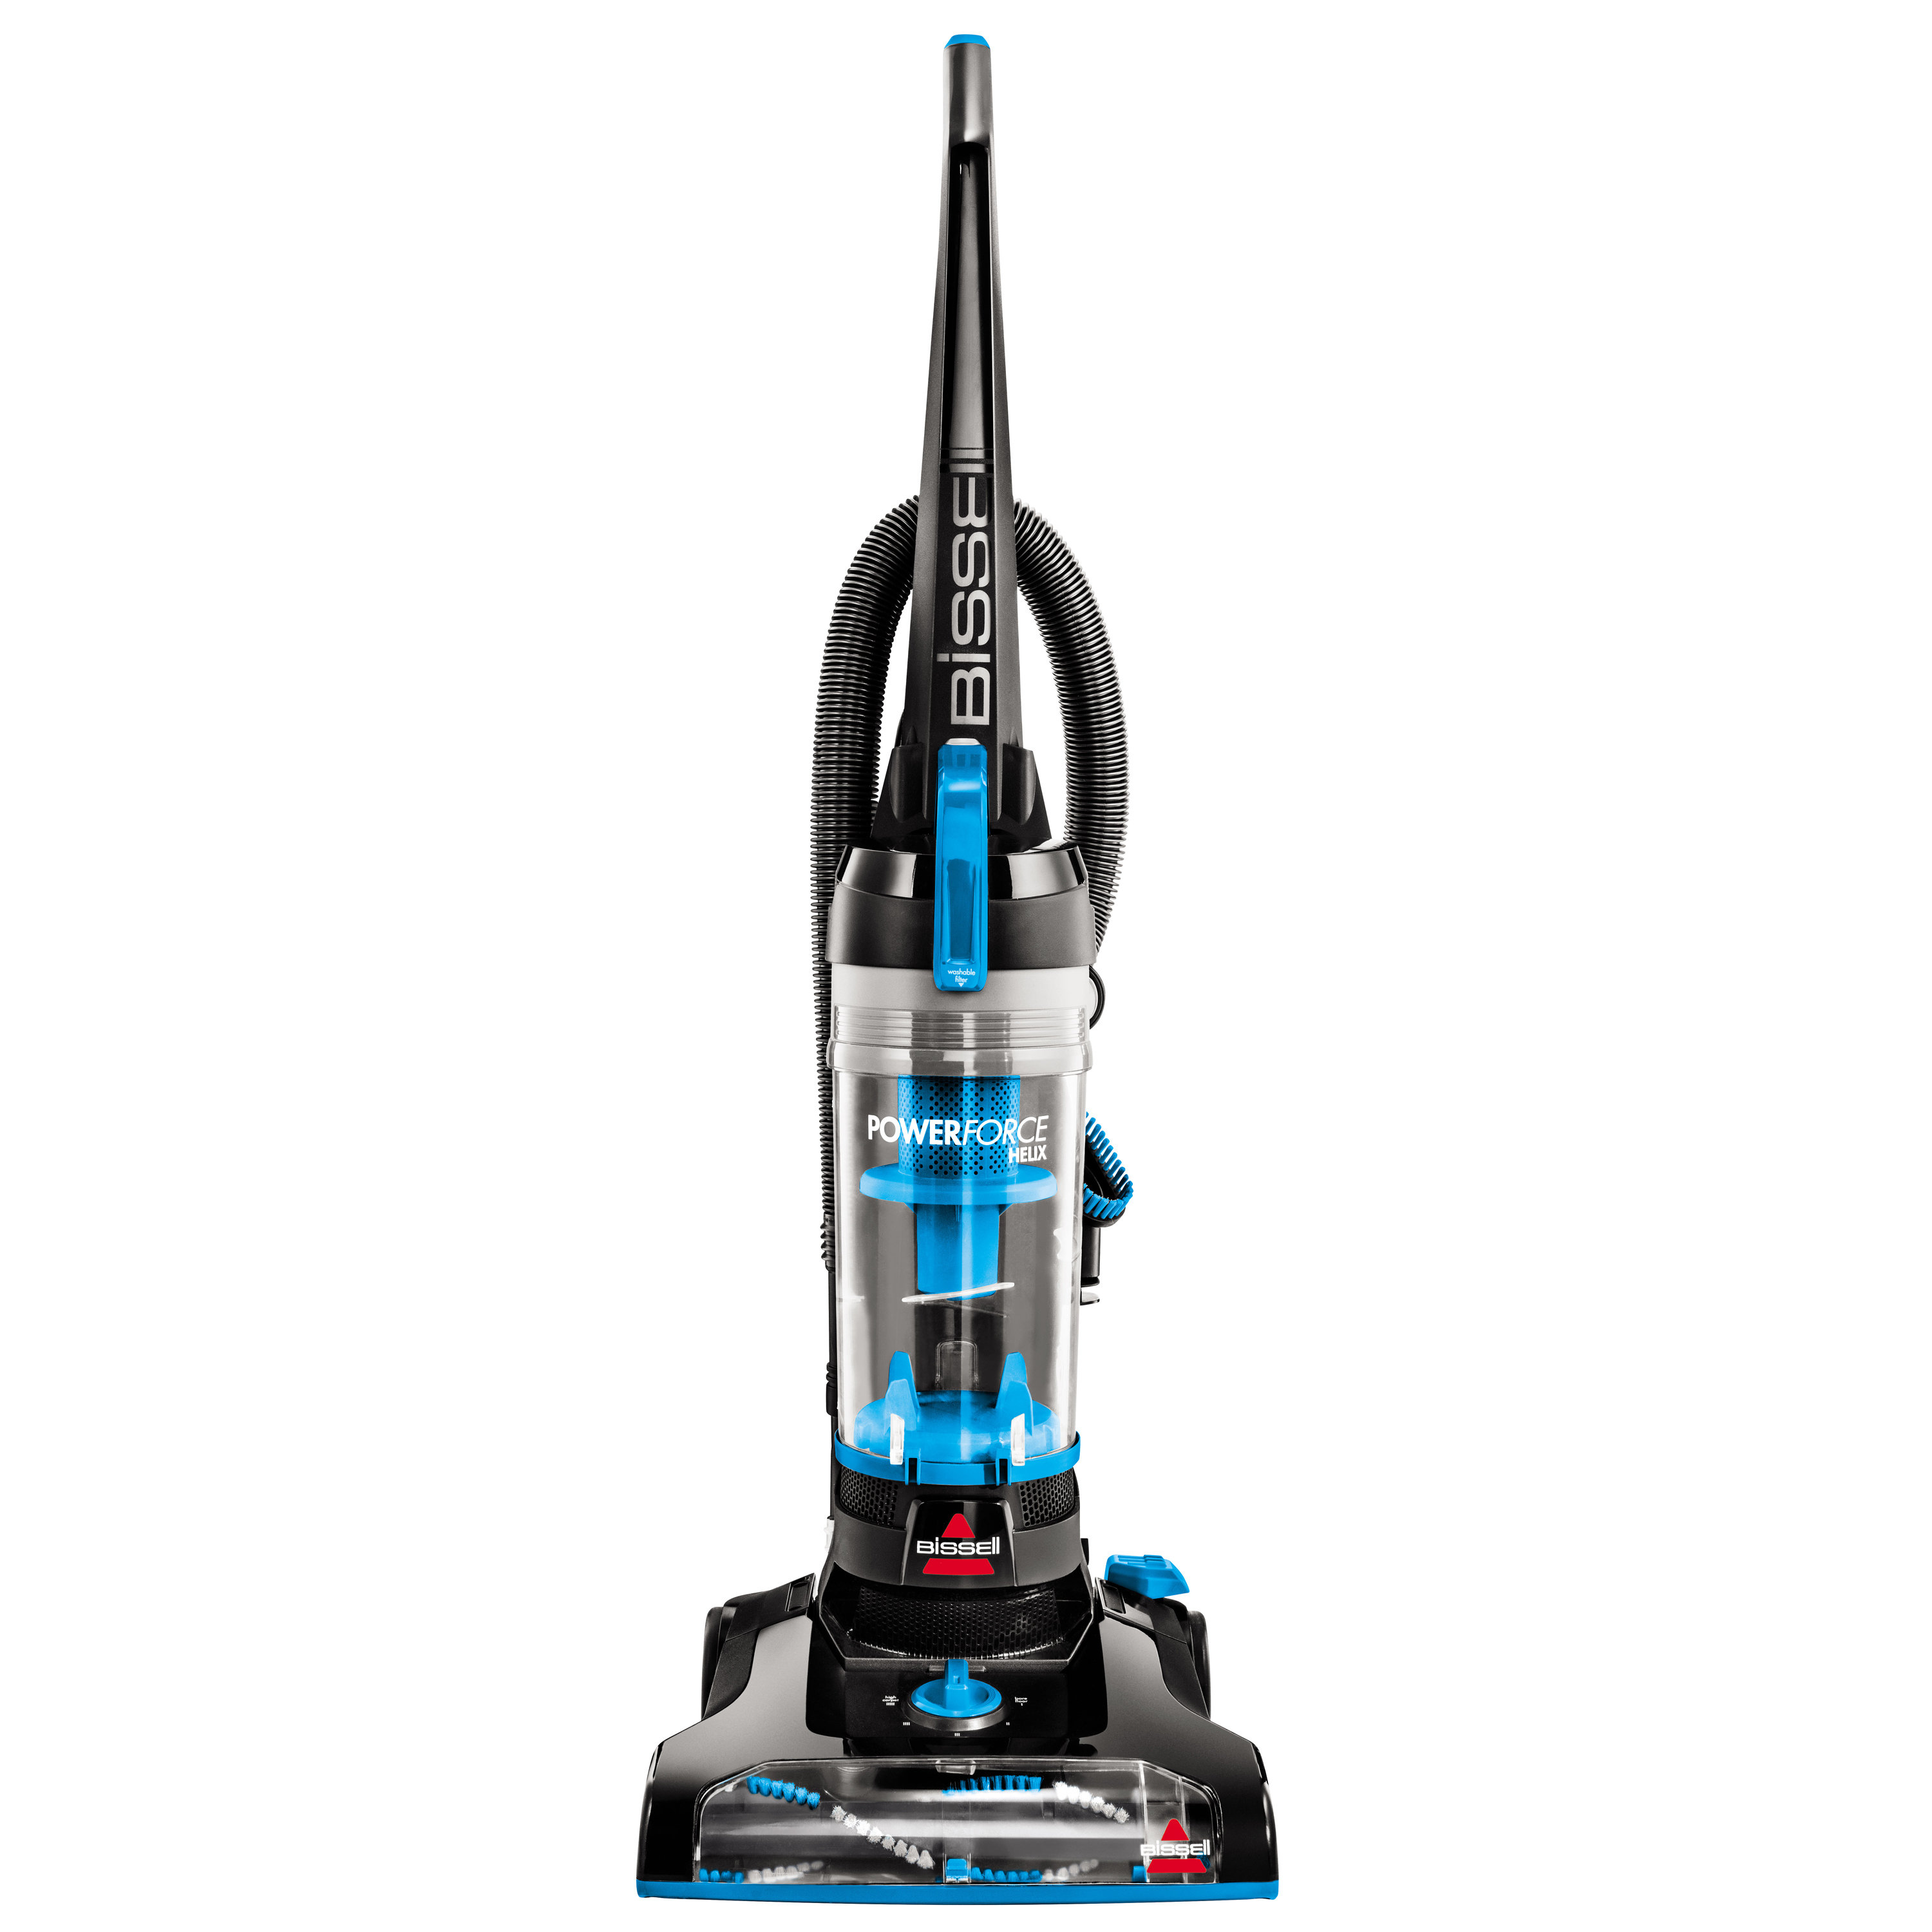 medium resolution of bissell powerforce helix bagless upright vacuum new and improved electrolux vacuum cleaner parts wiring diagram for bissell vacuum cleaner